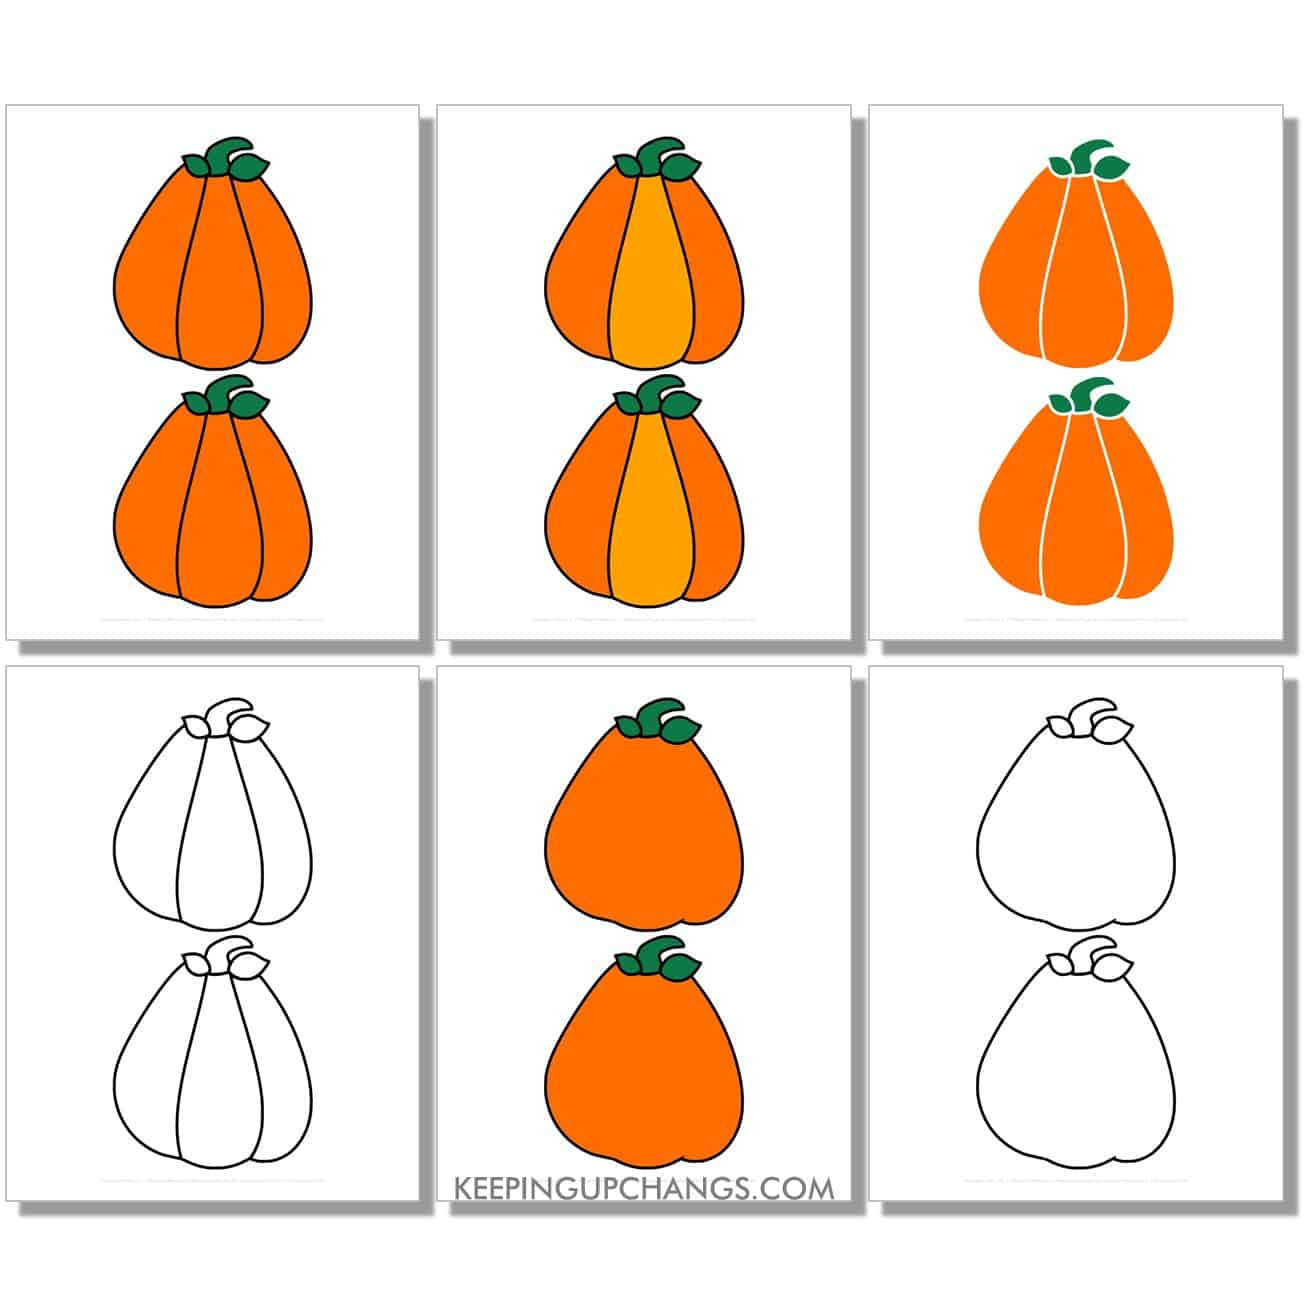 free medium triangle pumpkin in color, black and white, silhouette, 2 to a page.